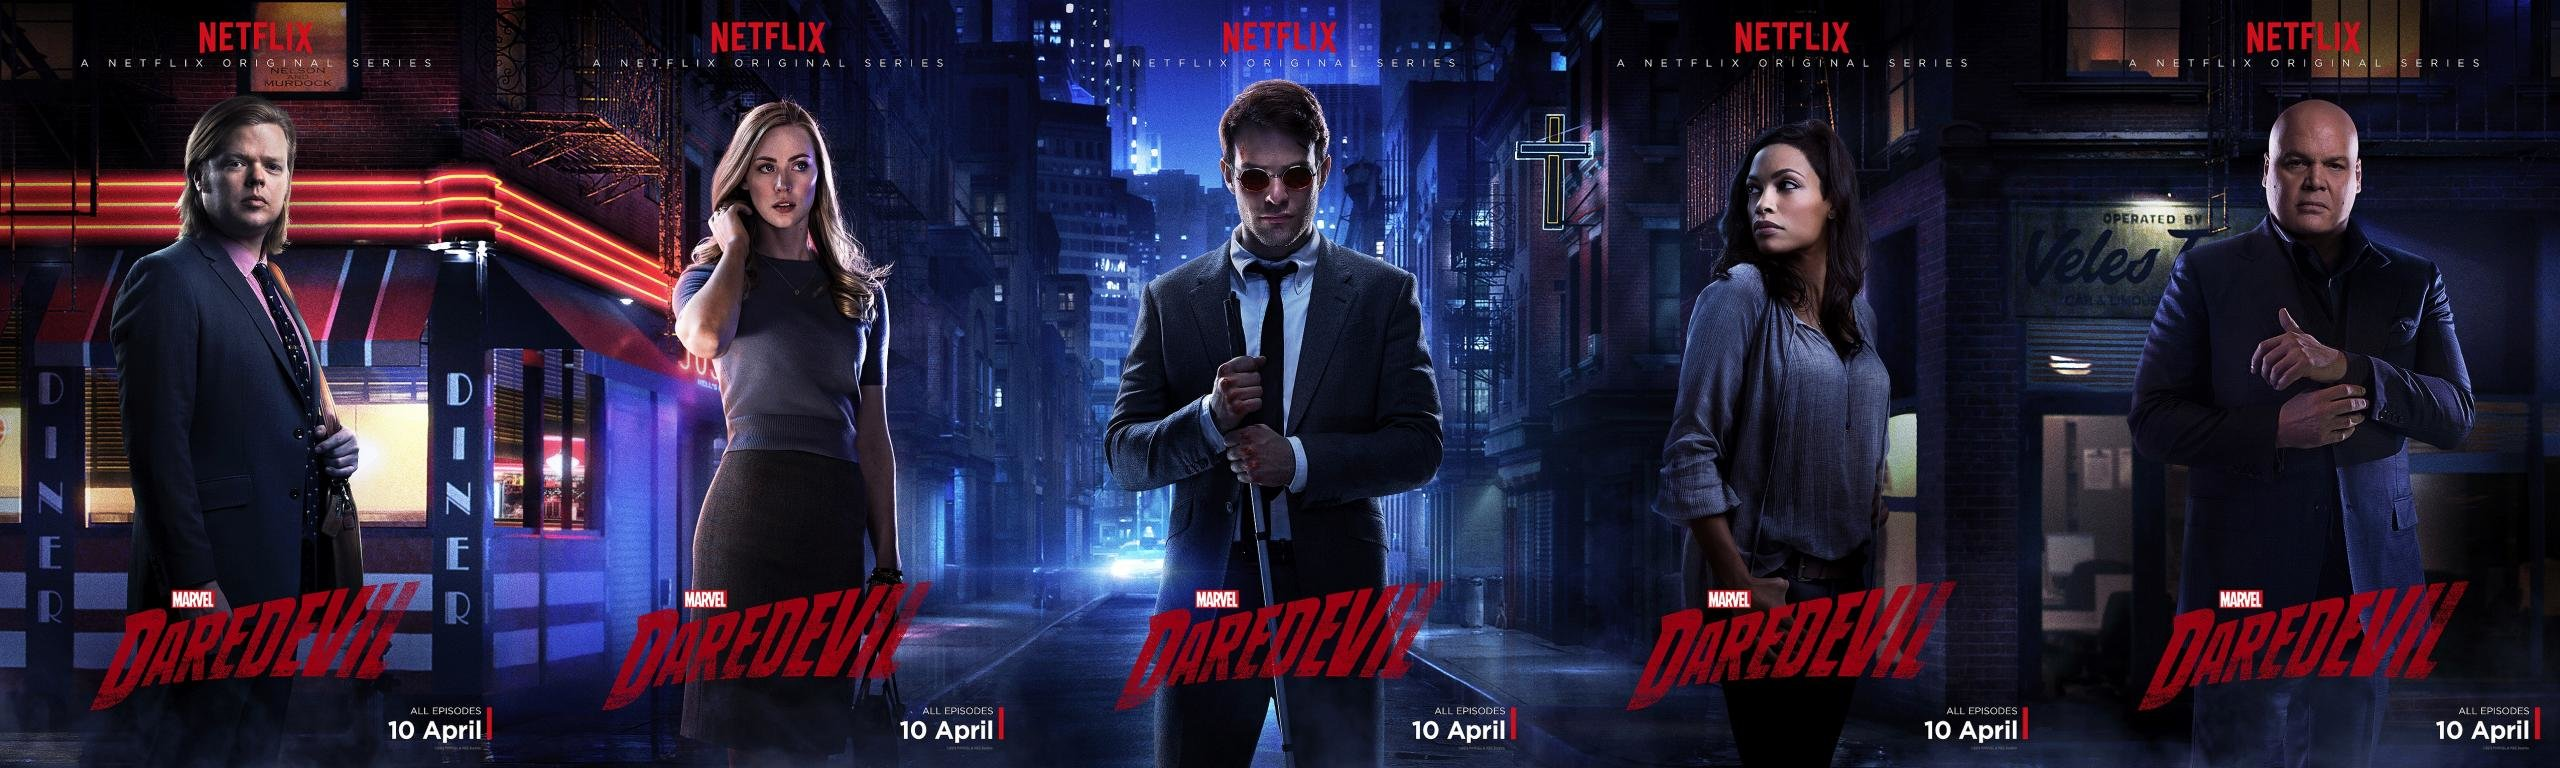 Free download Daredevil TV Show background ID:123171 dual screen 2560x768 for PC